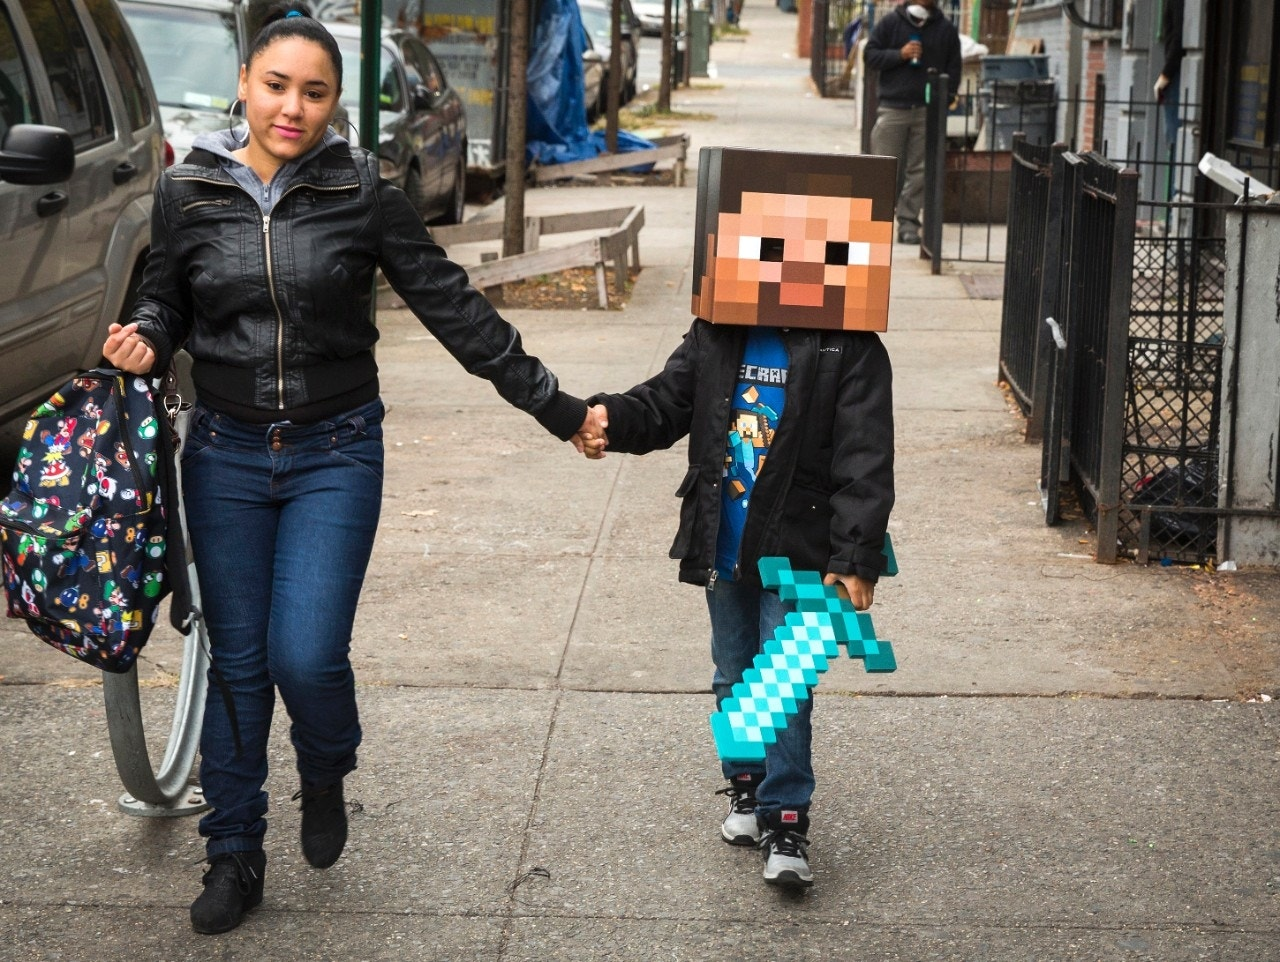 5 things Minecraft teaches kids (plus one bad thing, too)